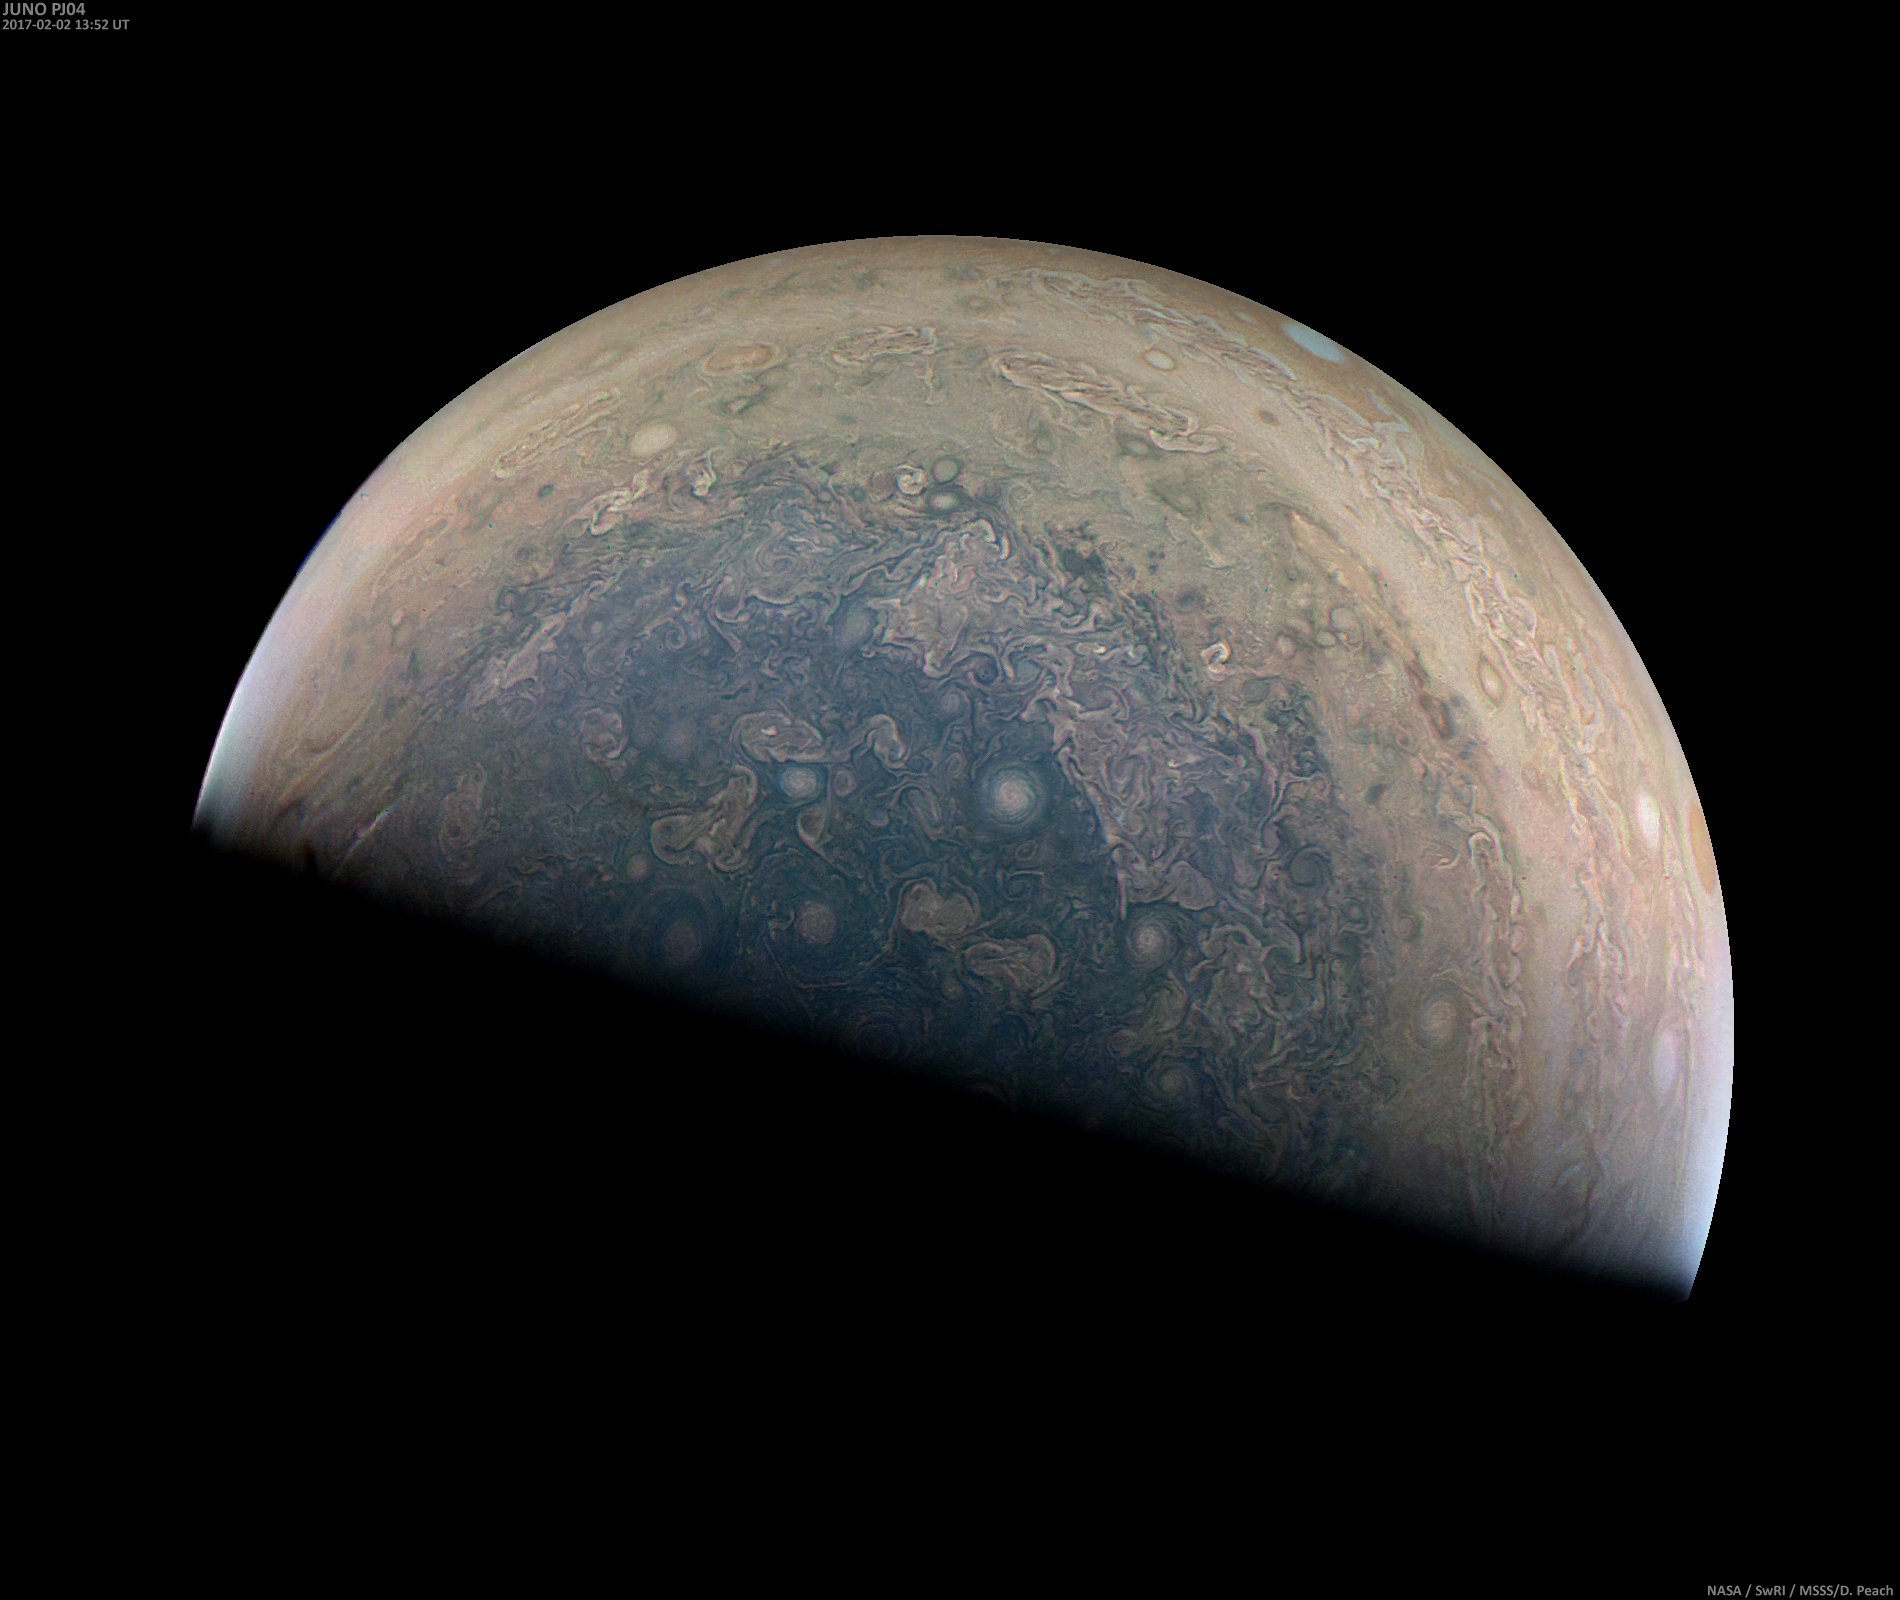 Jupiter by Juno, Feb. 2, 2017